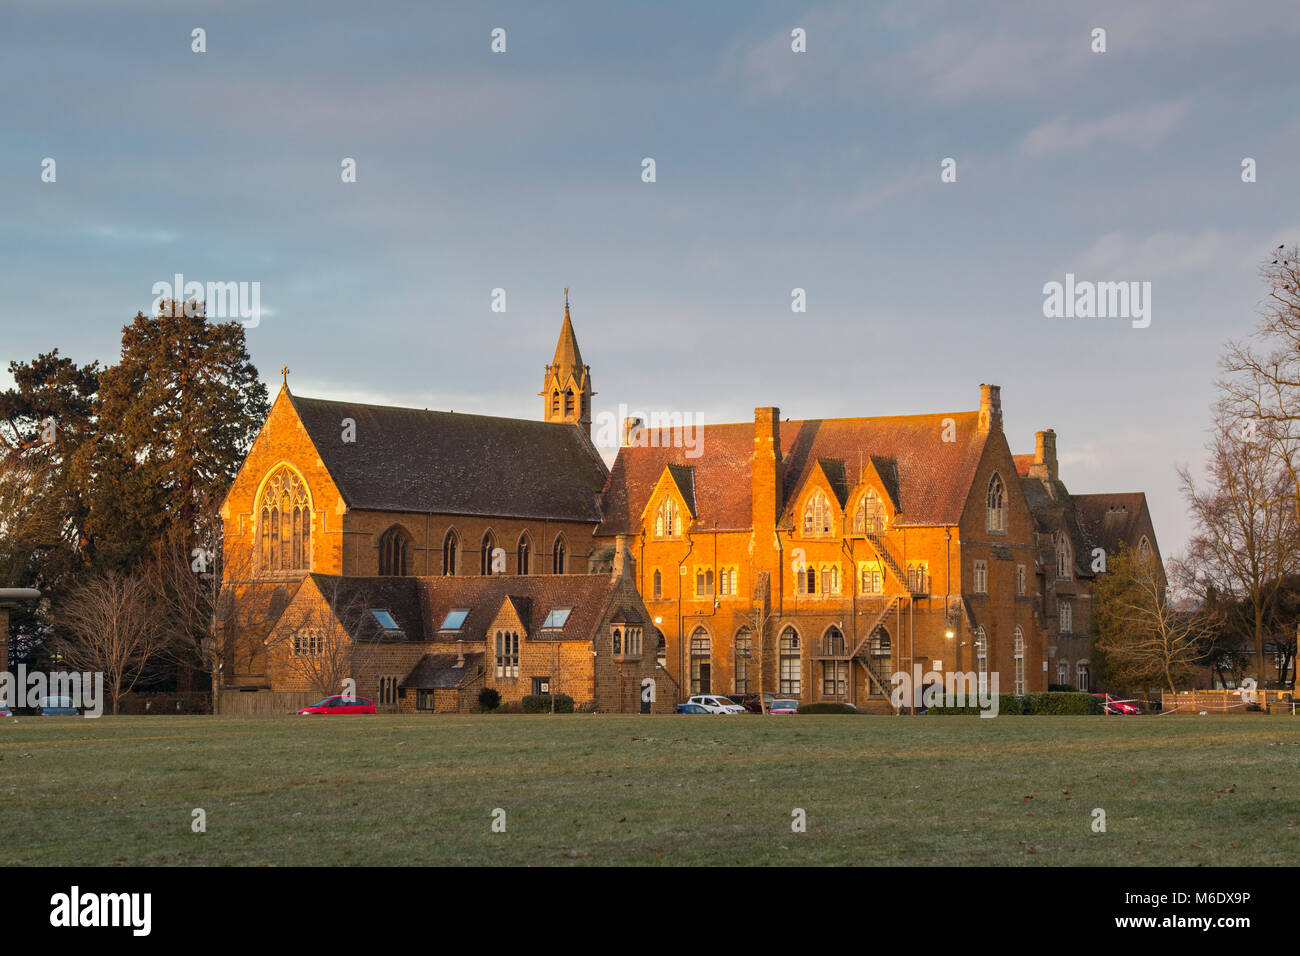 Bloxham School / All Saints' School in the early morning winter sunlight. Bloxham, Oxfordshire, England - Stock Image